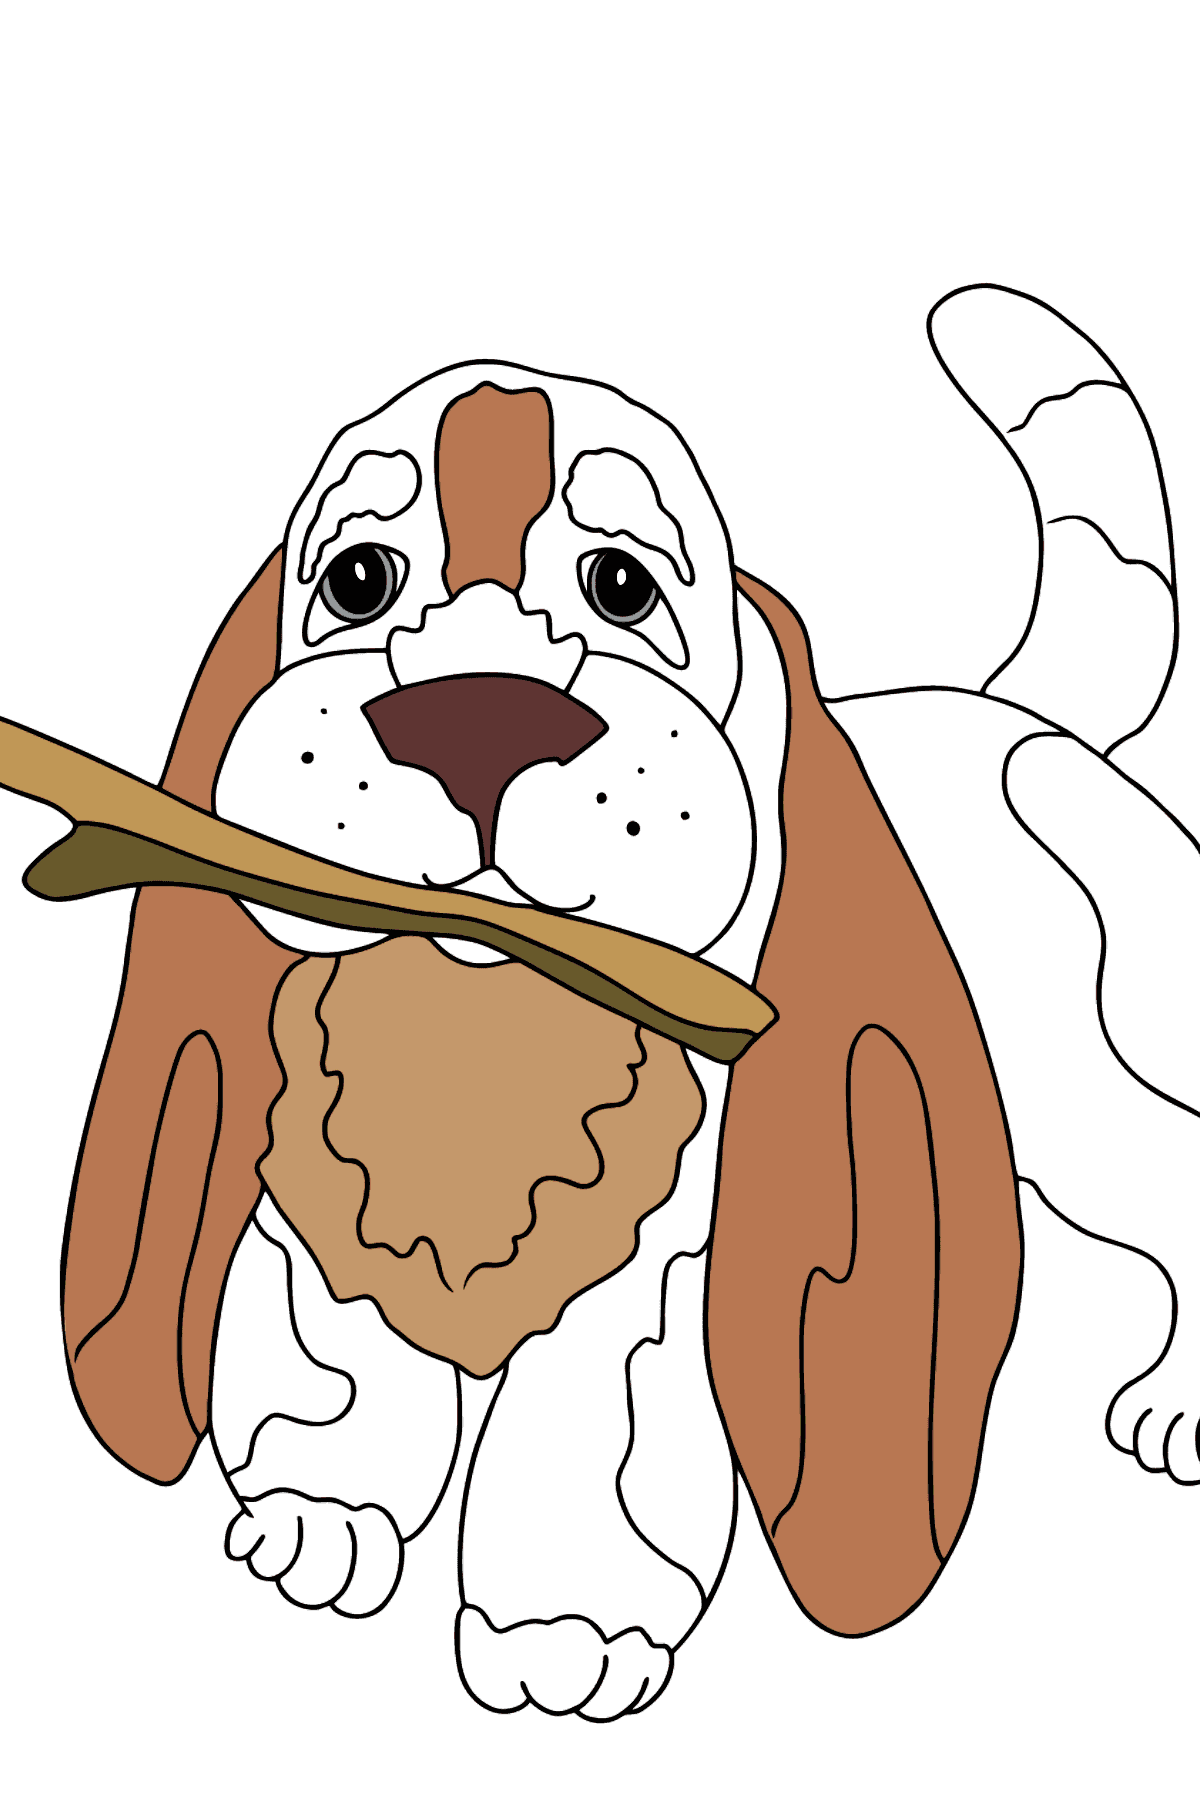 Coloring Page - A Dog is Waiting for Its Owner with a Stick - Coloring Pages for Kids